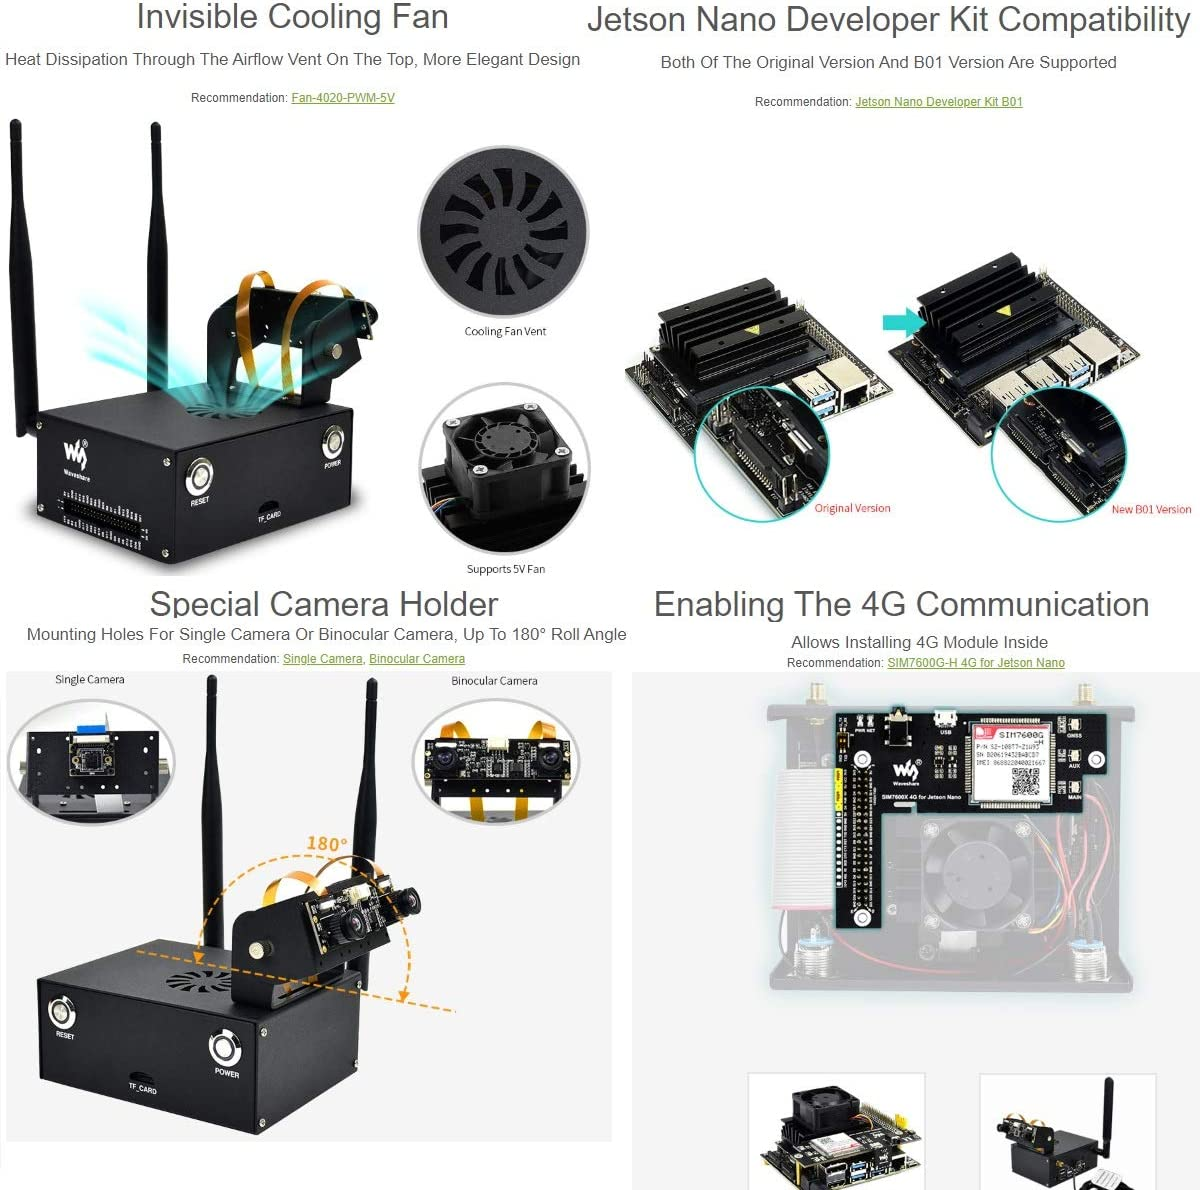 Metal Case Enclosure for Jetson Nano Developer Kit and B01 Version with Camera Holder,Reset,Power Buttons Compatible with Waveshare IMX219 Series Camera,Wireless-AC8265,Cooling Fan C